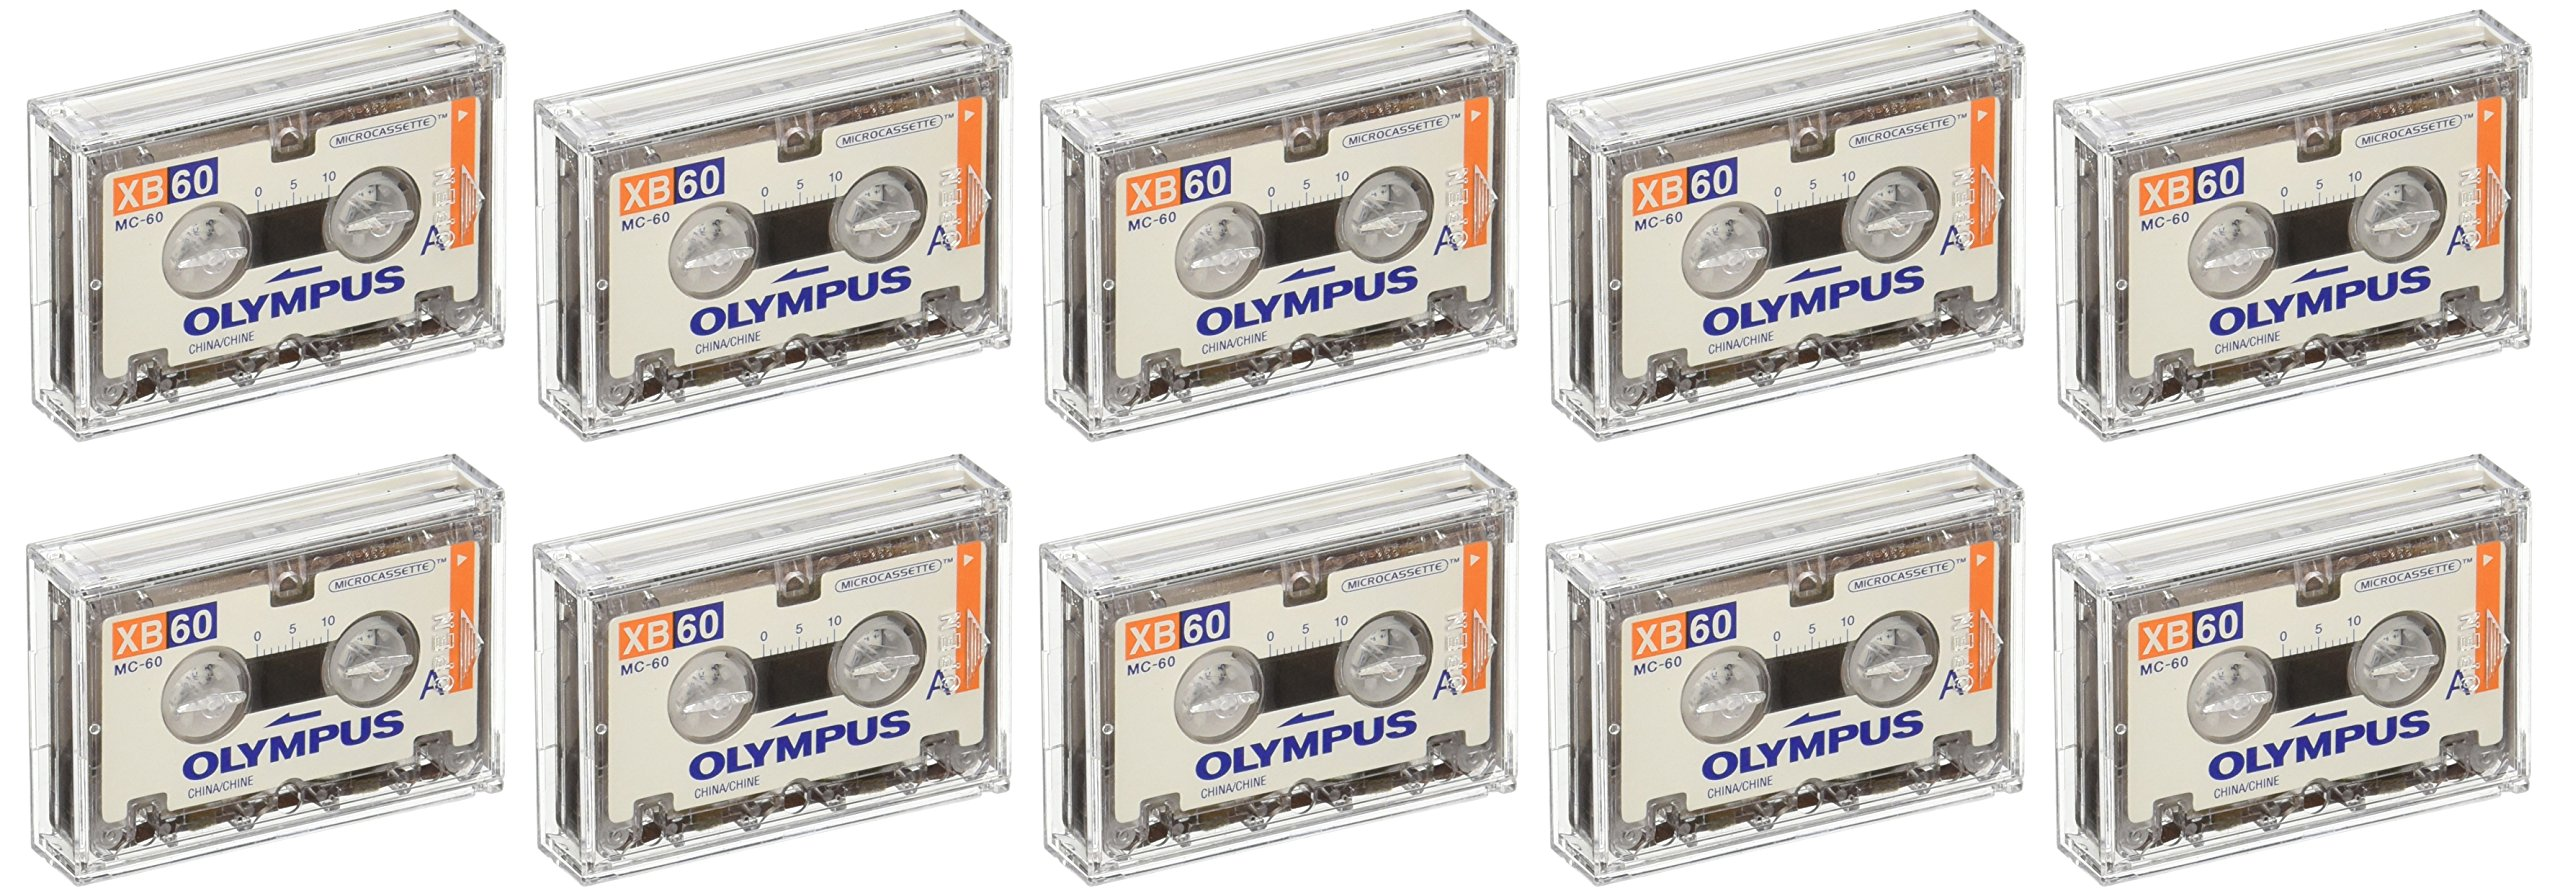 Olympus XB-60 SB / 10 Pack Standard Blank Microcassette Tapes MC-60